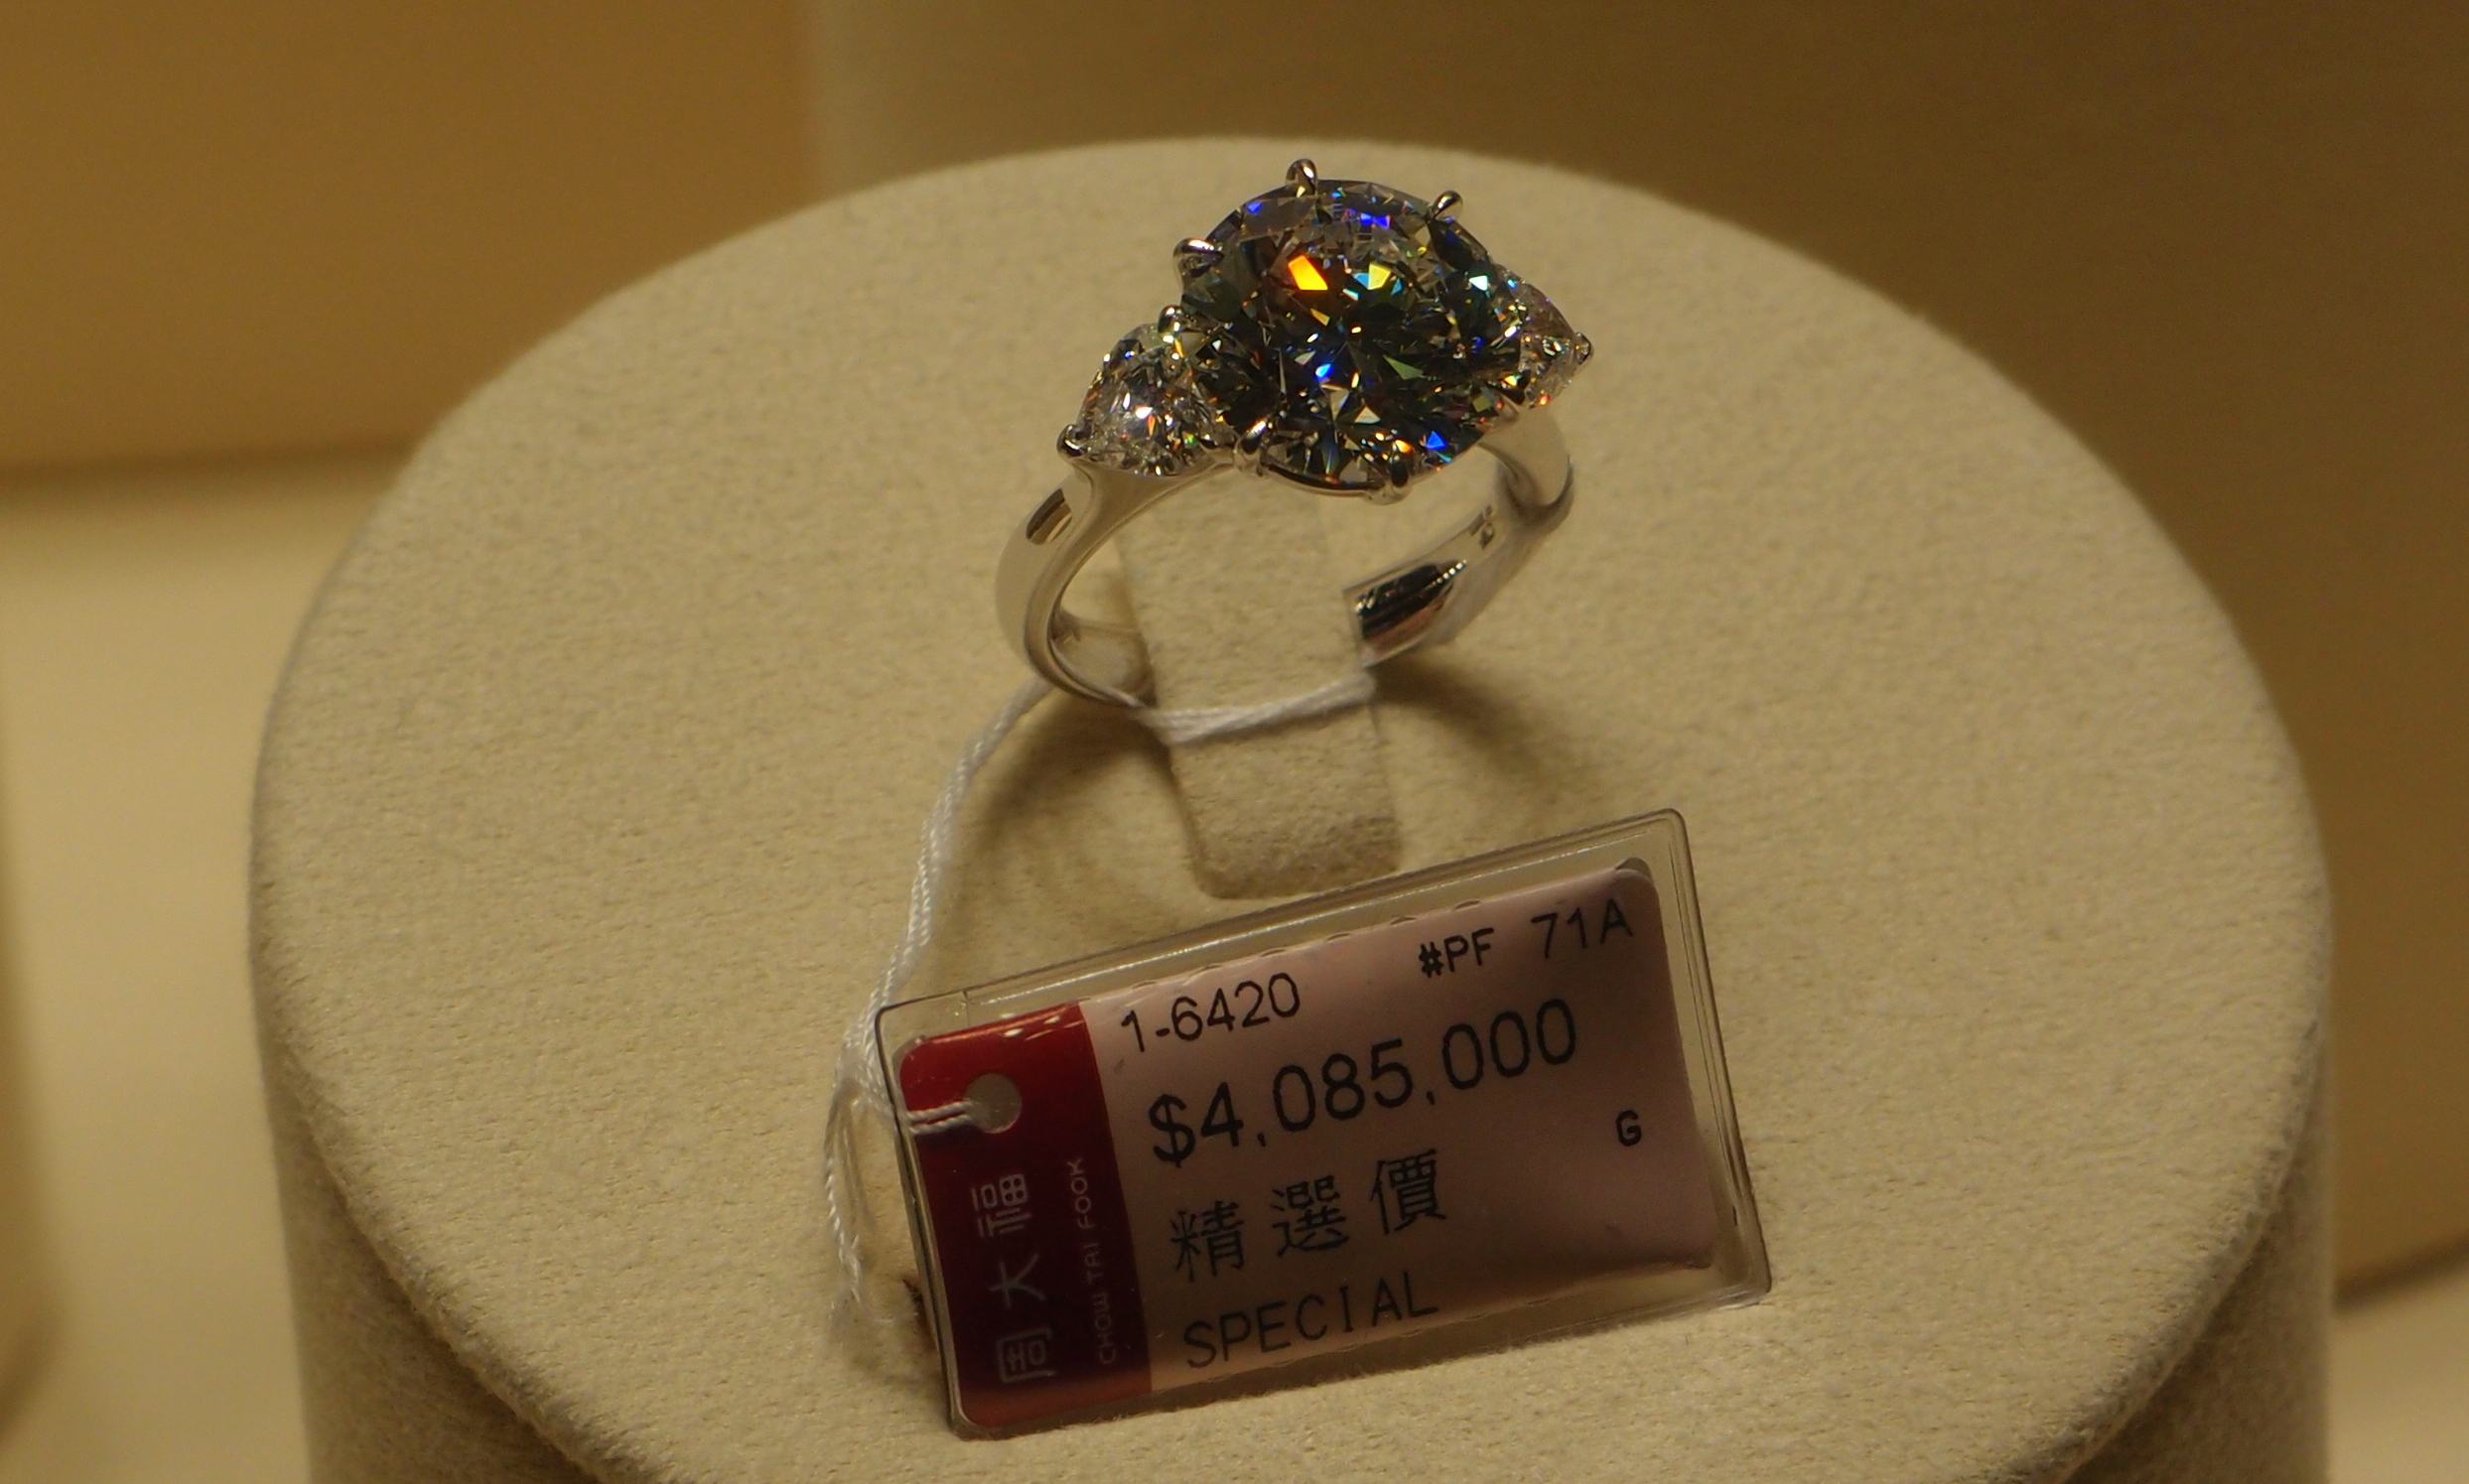 HK$4,085,000 or US$525,000, a relative bargain in these trying times - what is disturbing is that these rings are very common these days.